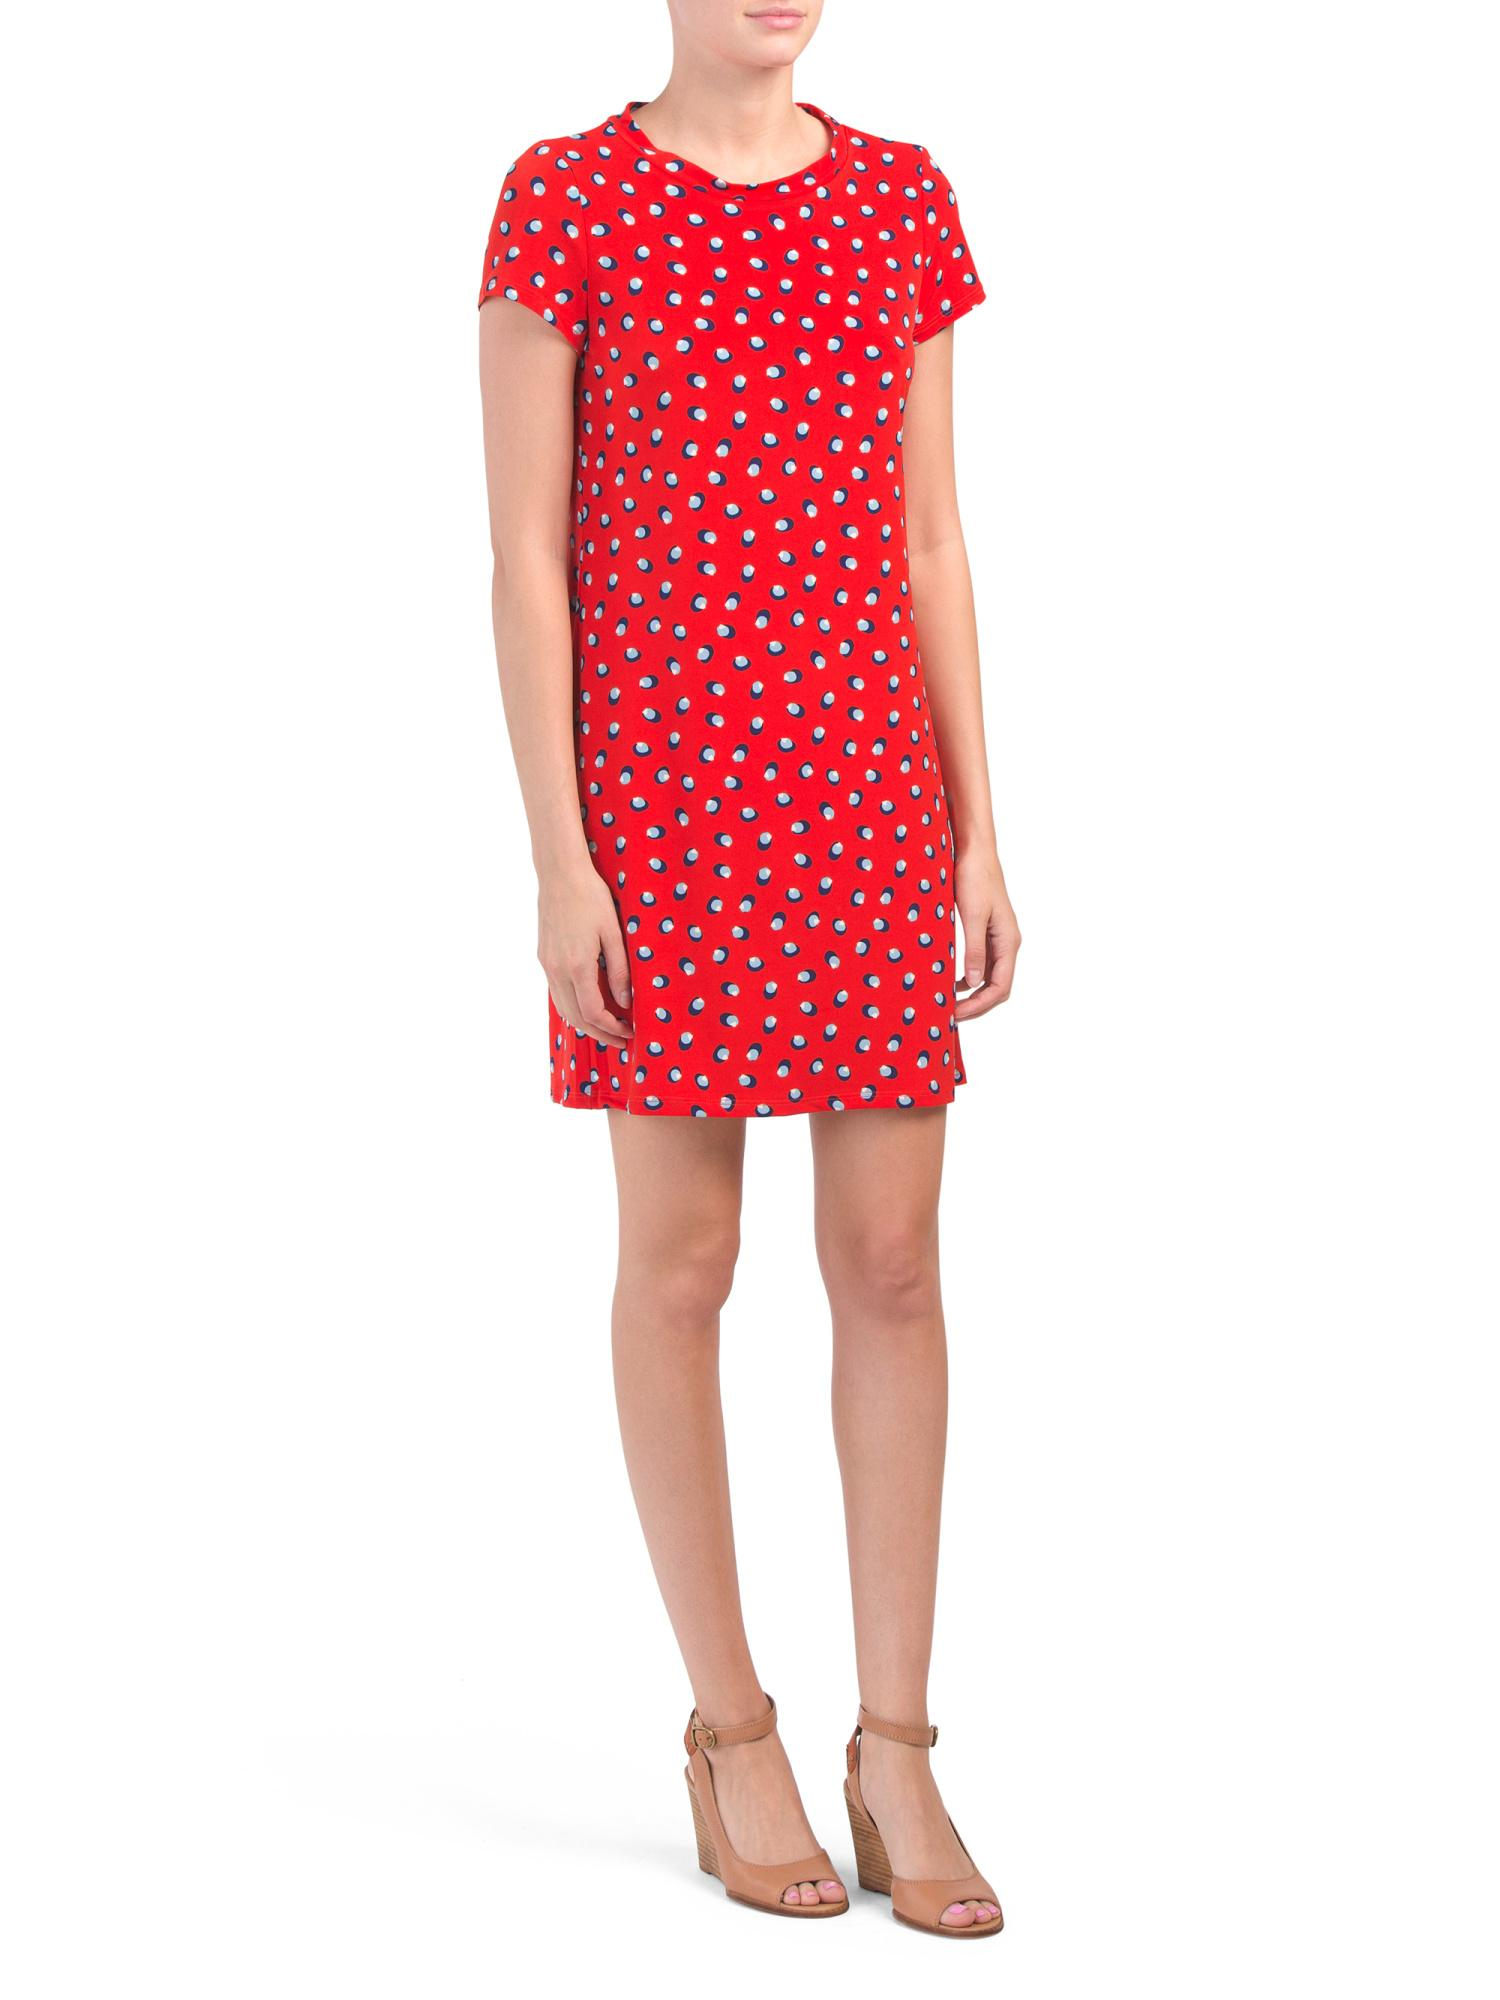 91e25c3d6821 Tj Maxx Made In Usa A Line Printed Dress in Red - Lyst